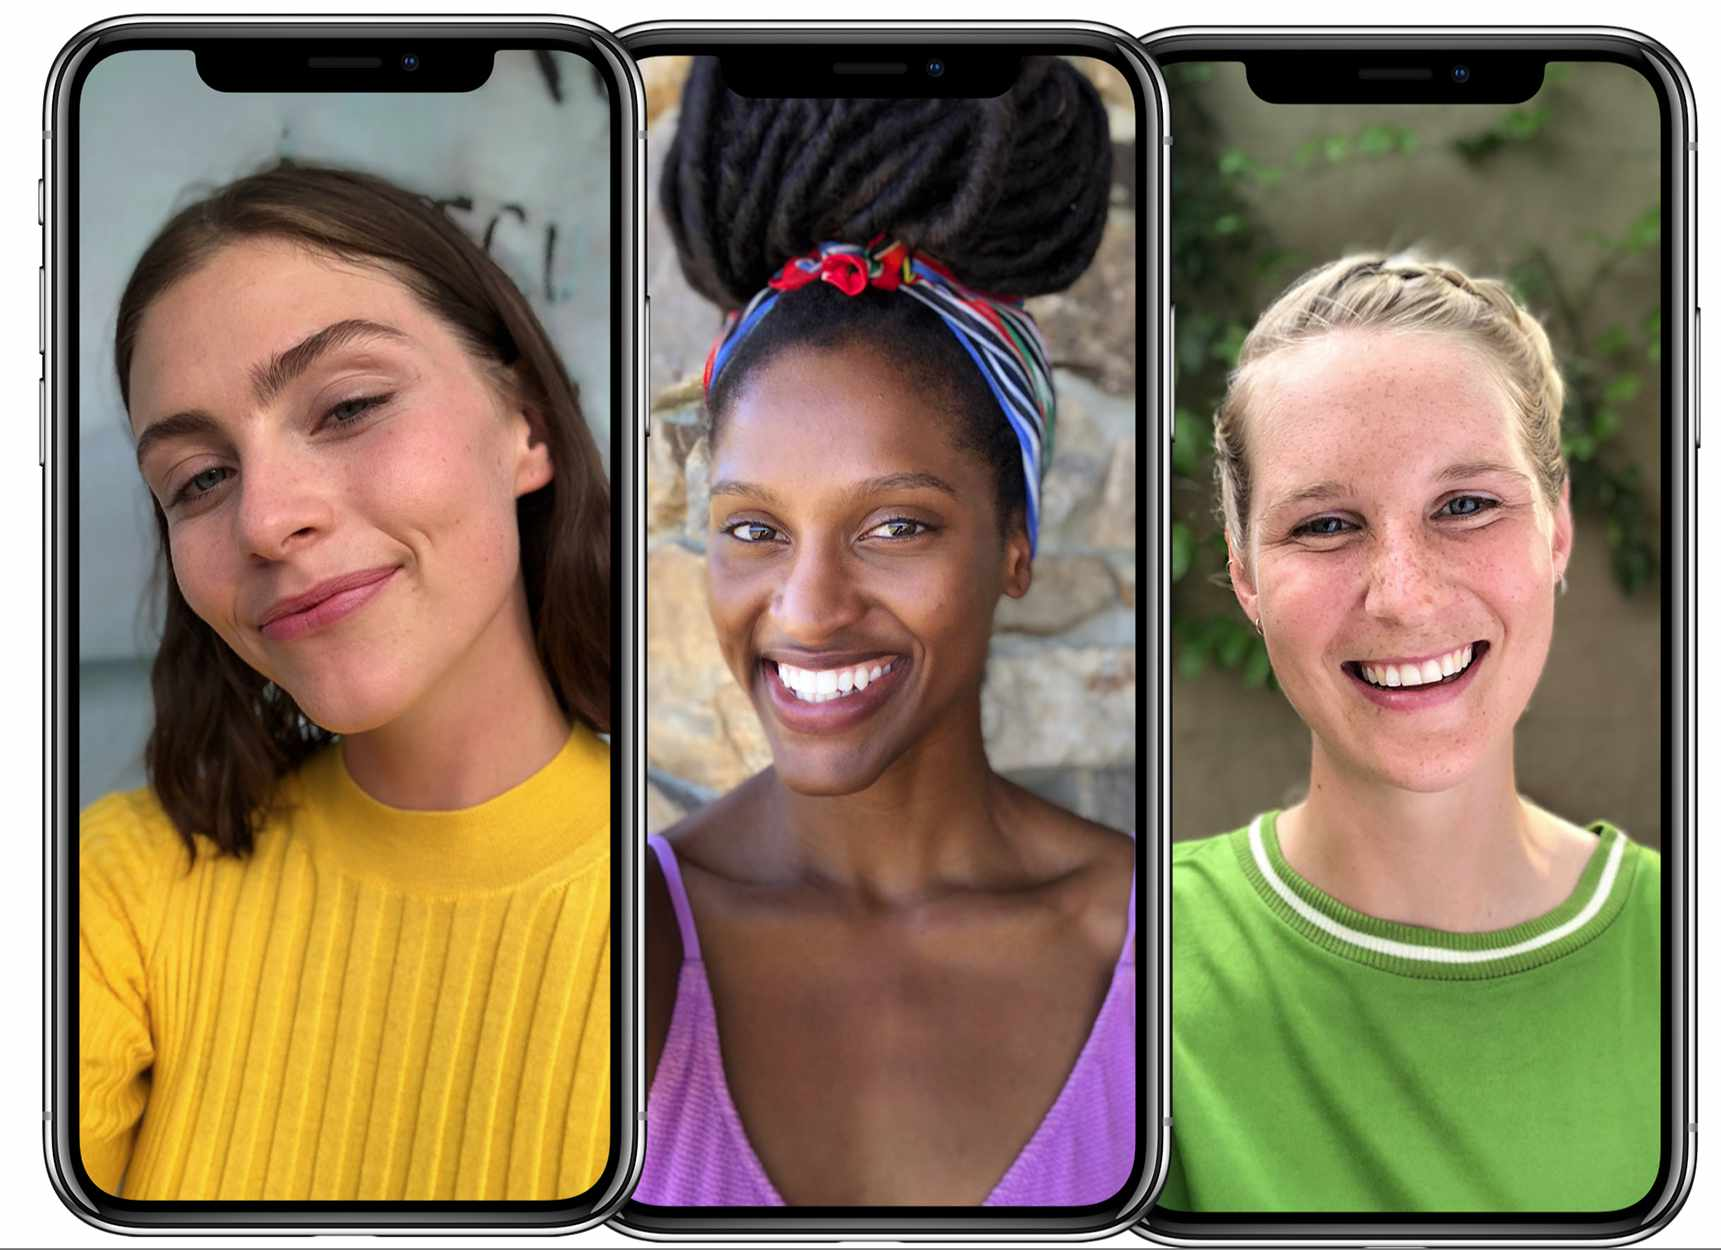 Three examples of people smiling for Face ID on their iPhones.